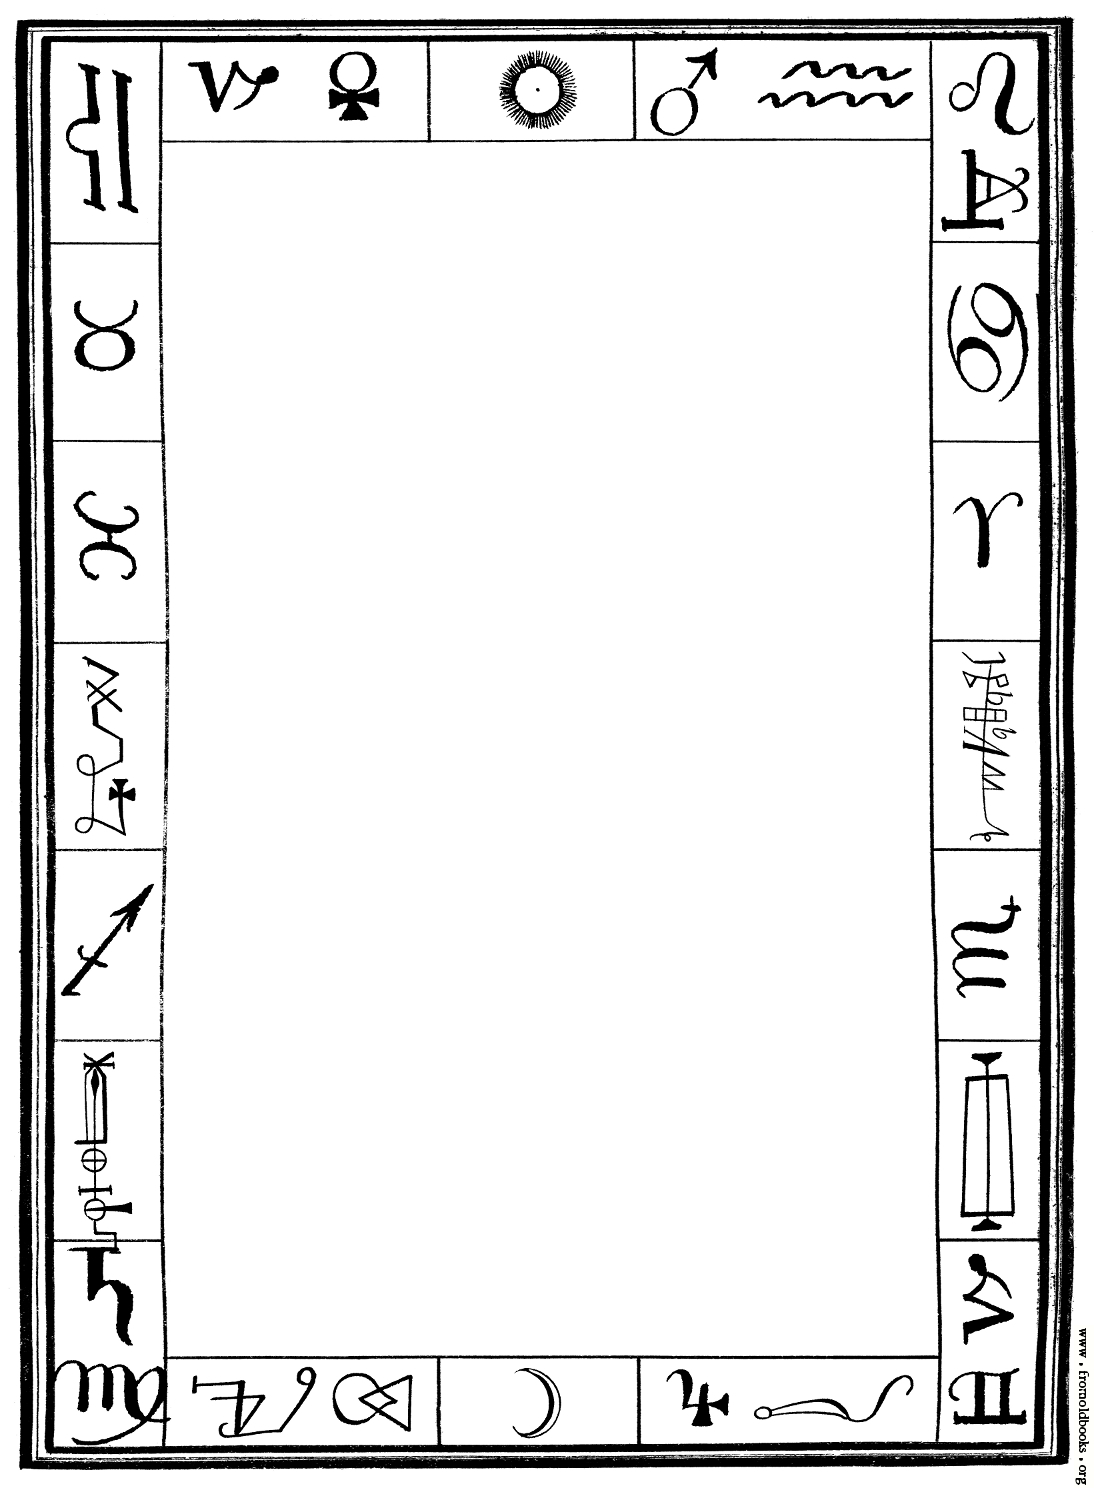 Free Egyptian Border Designs, Download Free Clip Art, Free.